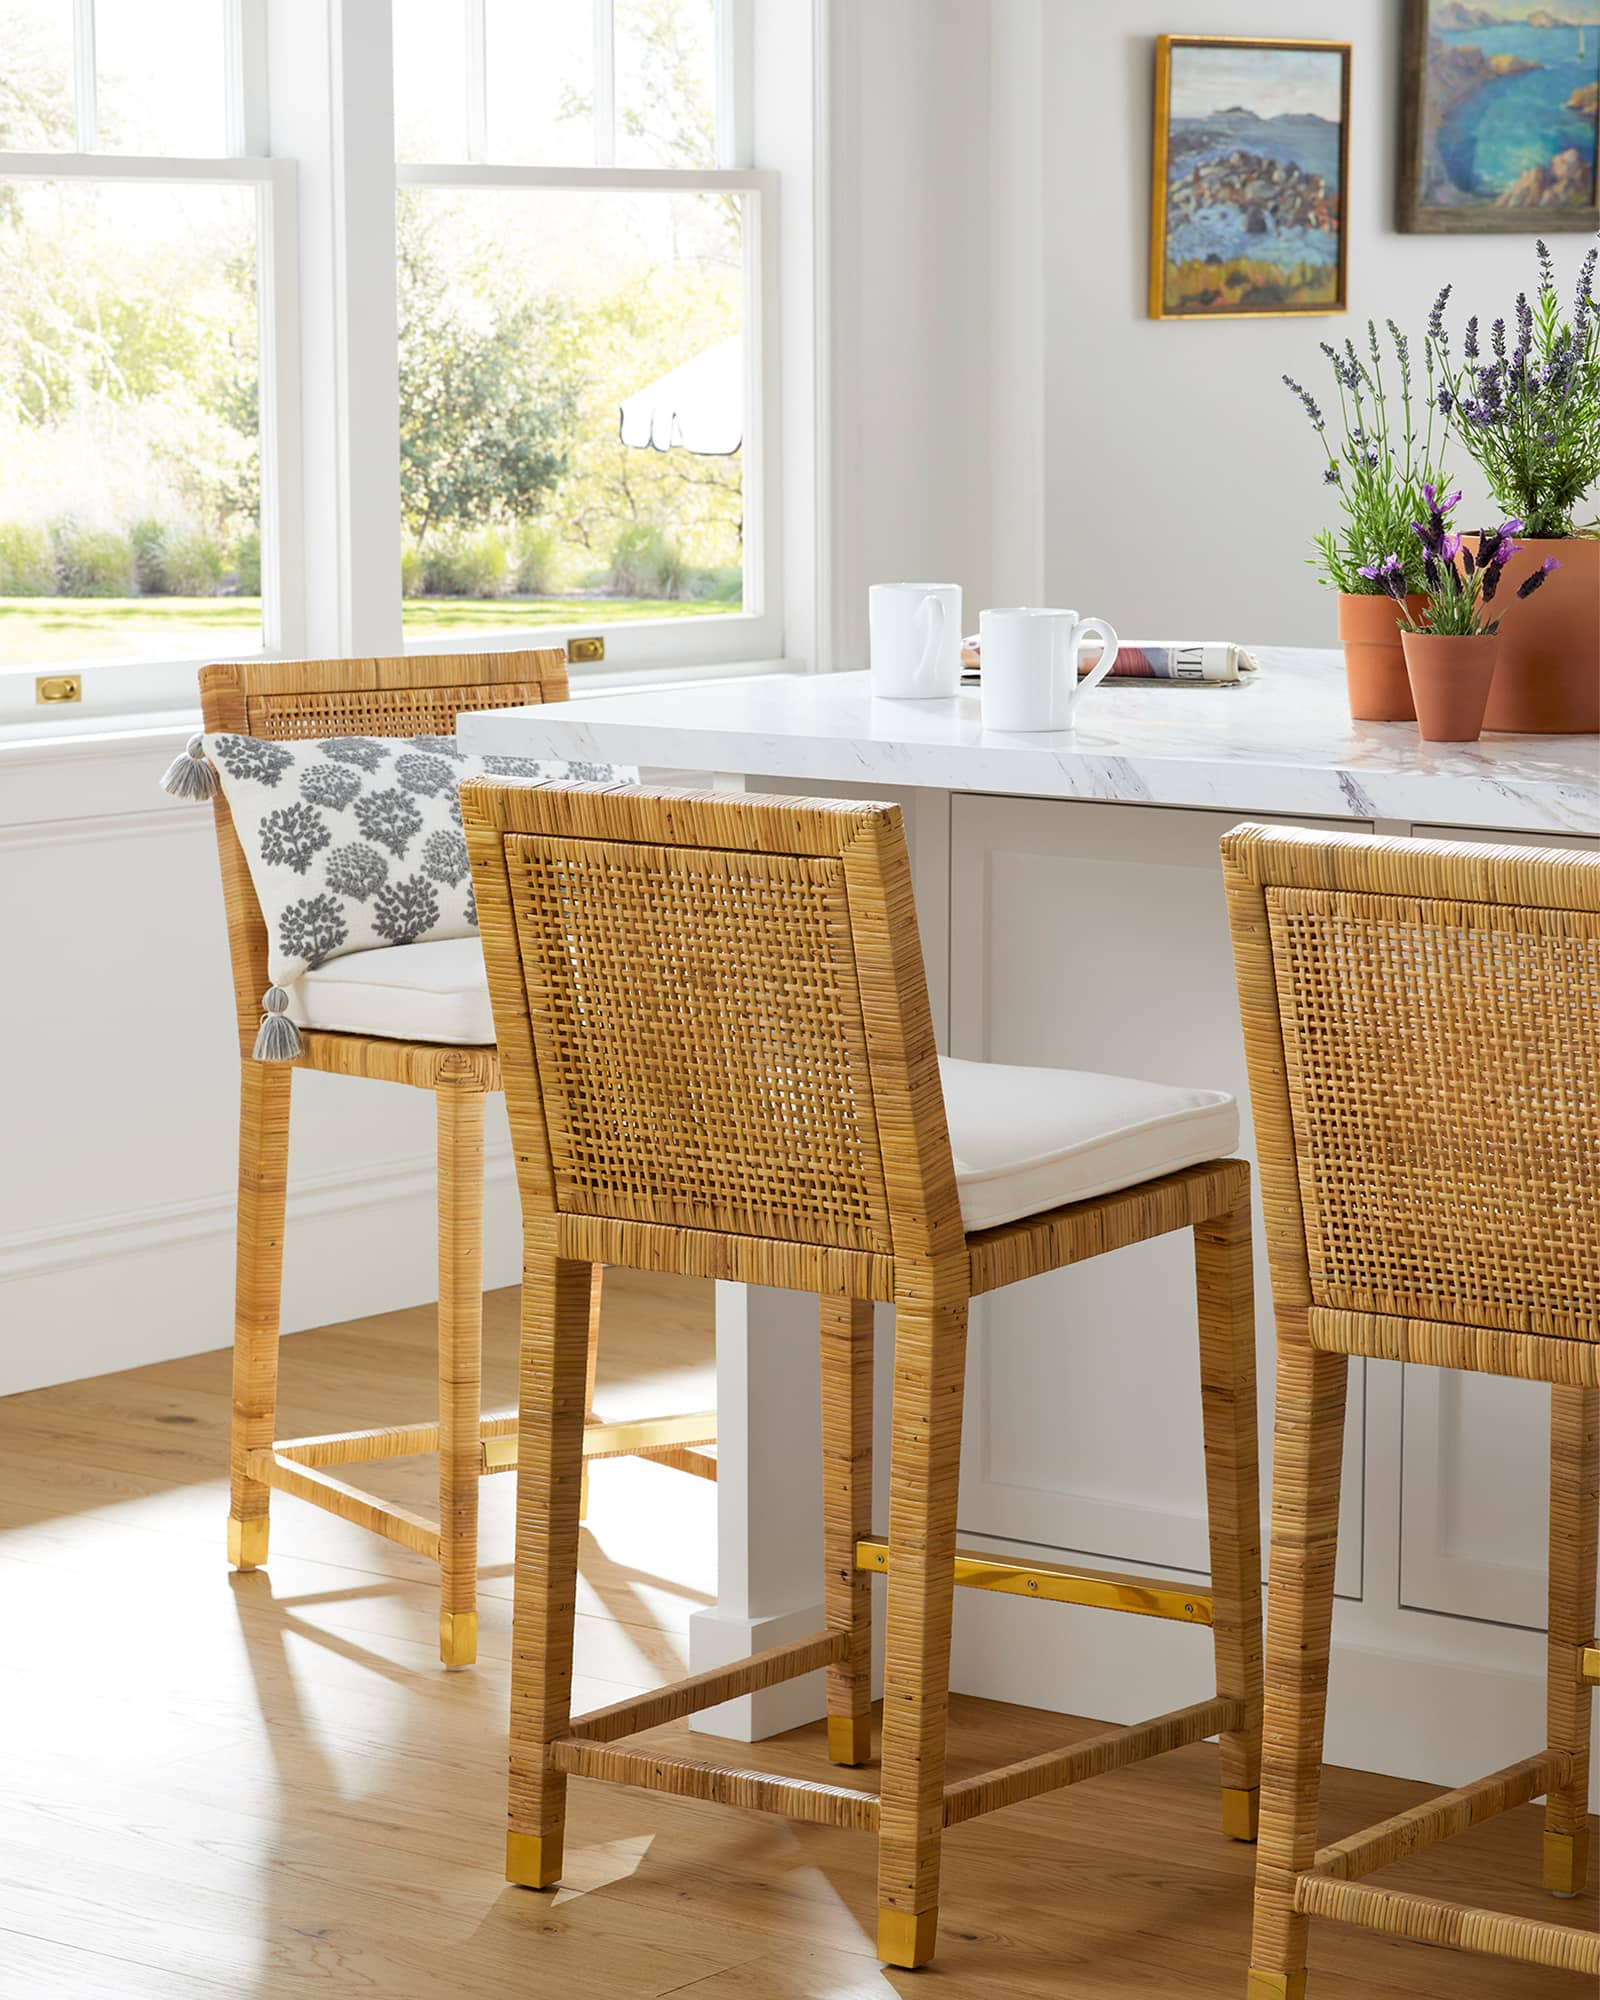 Balboa counter stools at kitchen island